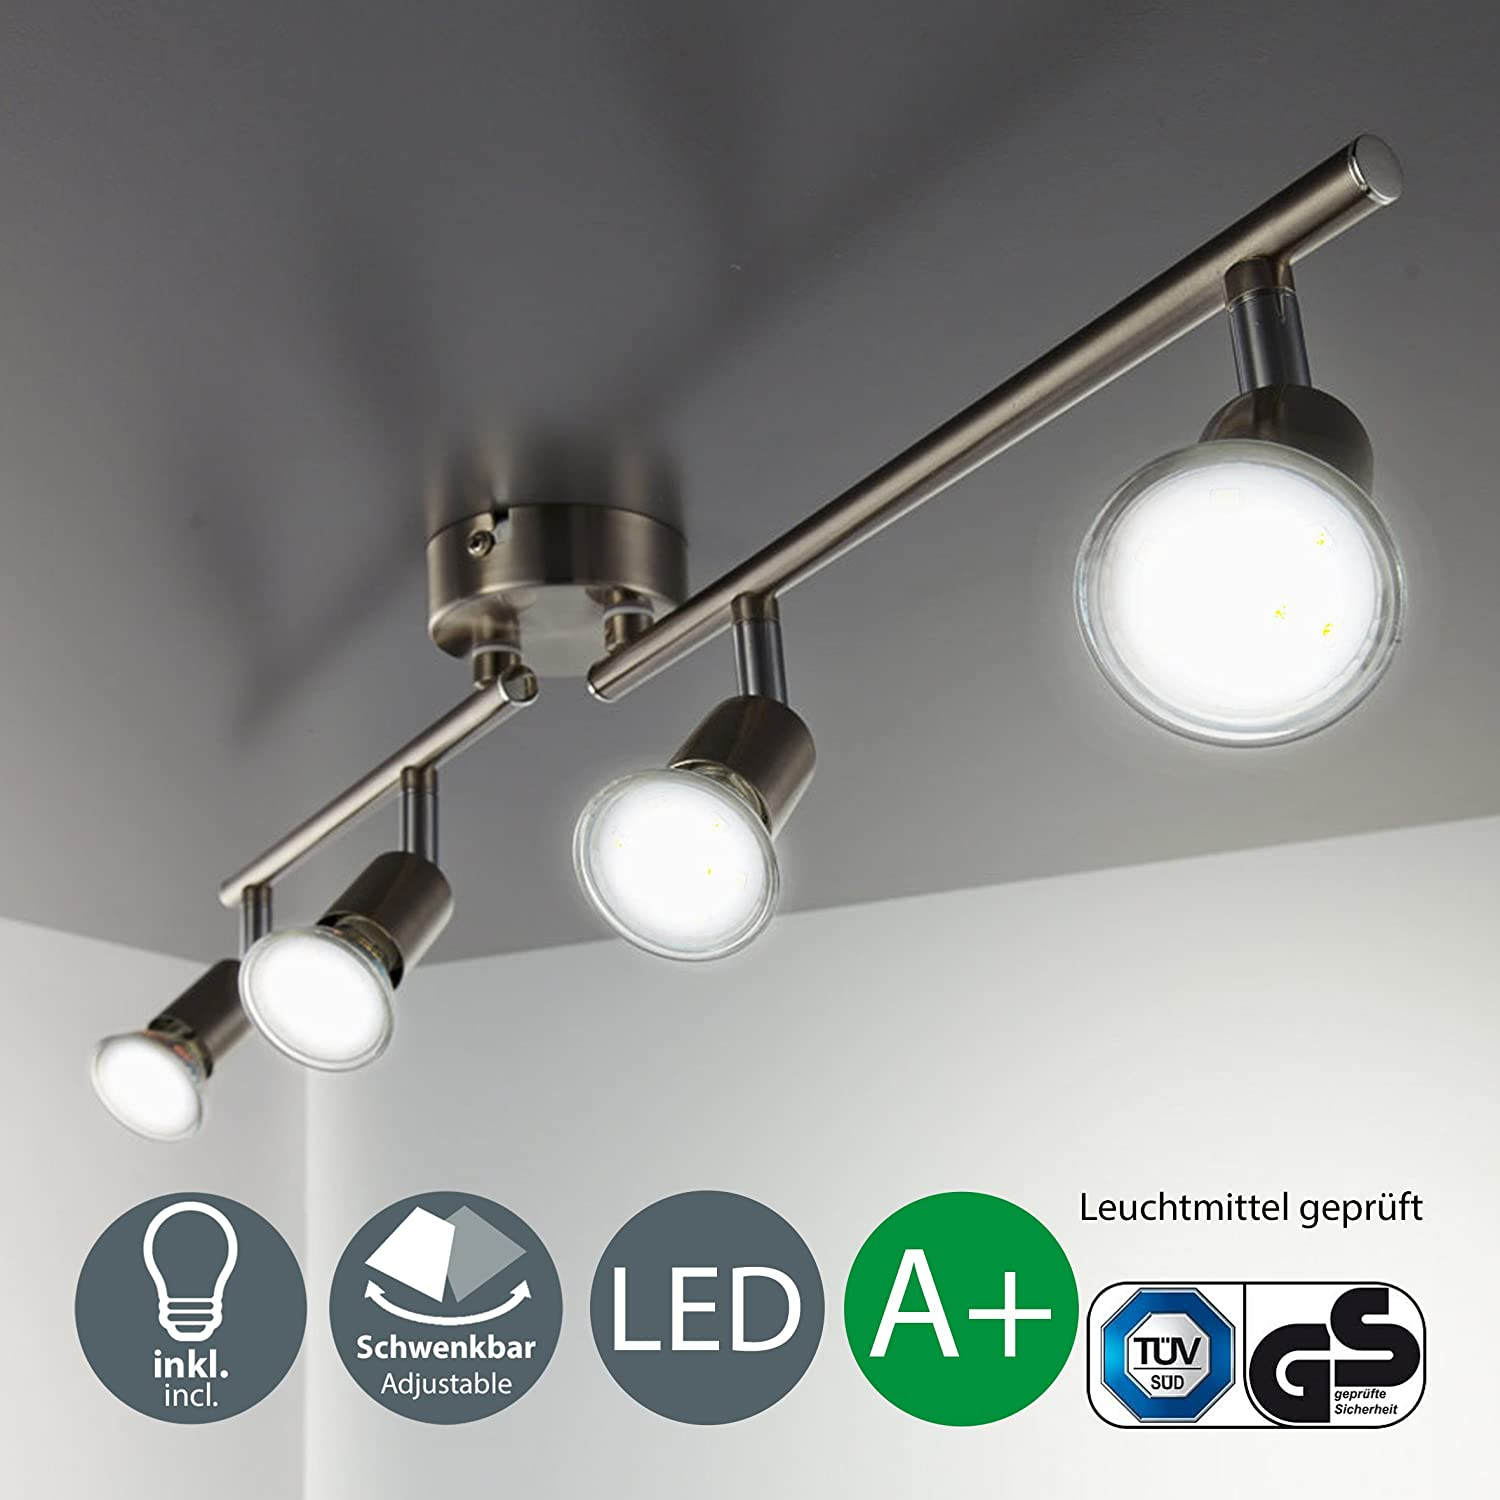 Led Ceiling Light Rotatable I Spotlight For Kitchen Living Room Wires And Functional Addition Can Possible That The Kind Bedroom Lamp Spots Warm White Metal Matte Nickel Design 4 X 3 W